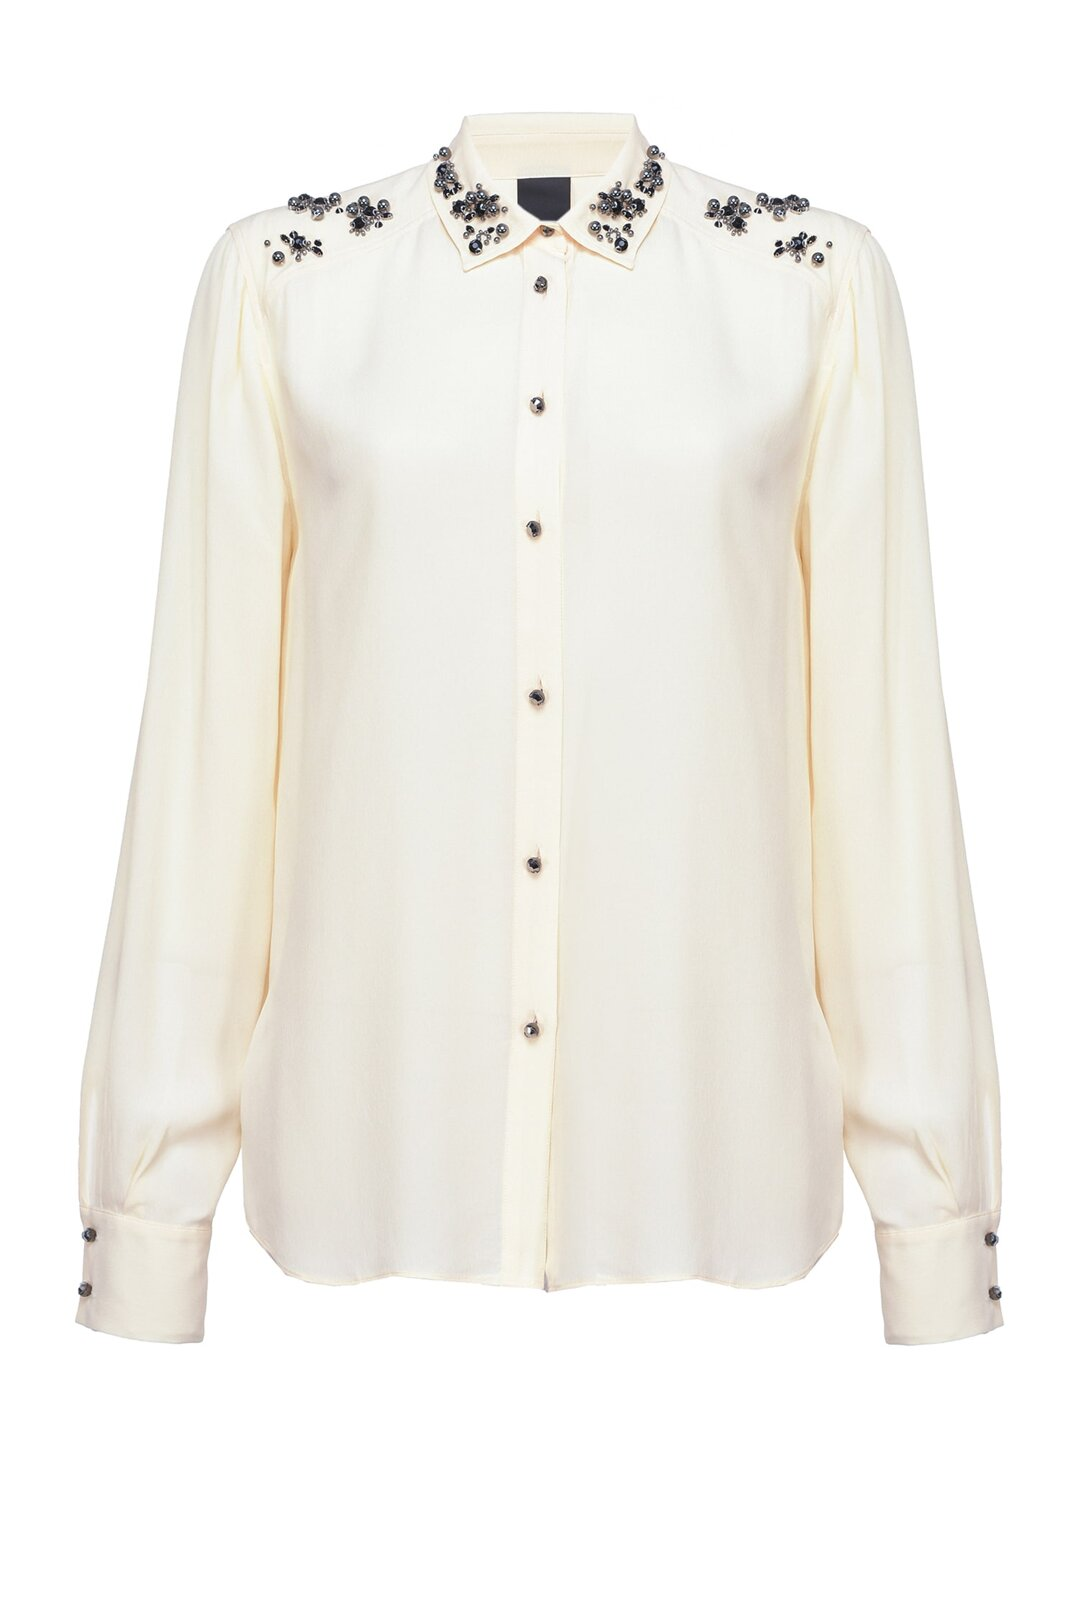 Shirt With Jewel Applications - Pinko